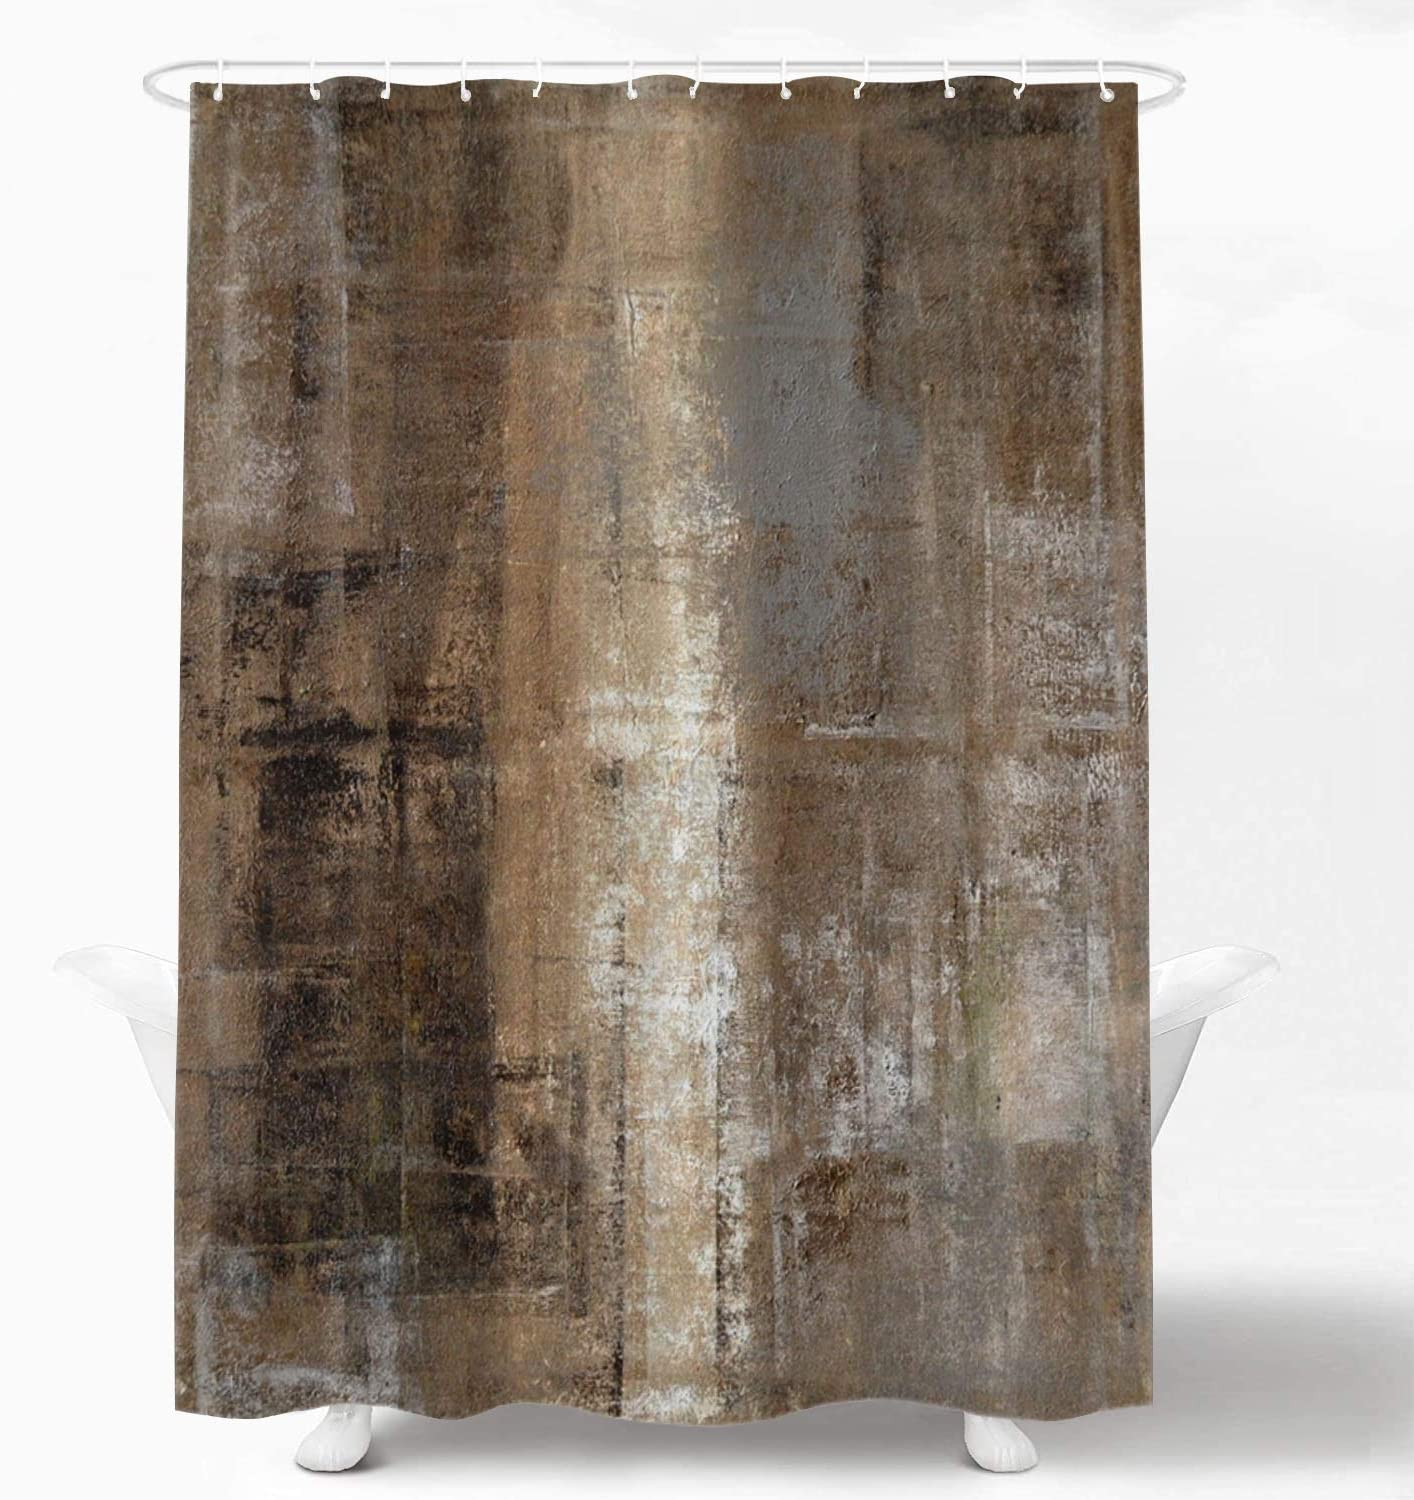 Shrahala Brown Grey Abstract Art Decorative Shower Curtain, Brown Art Abstract Acrylic Painting Shower Curtain for Shower Stall Bathroom Waterproof Funny Shower Curtain with Grommets 72x72 Inch